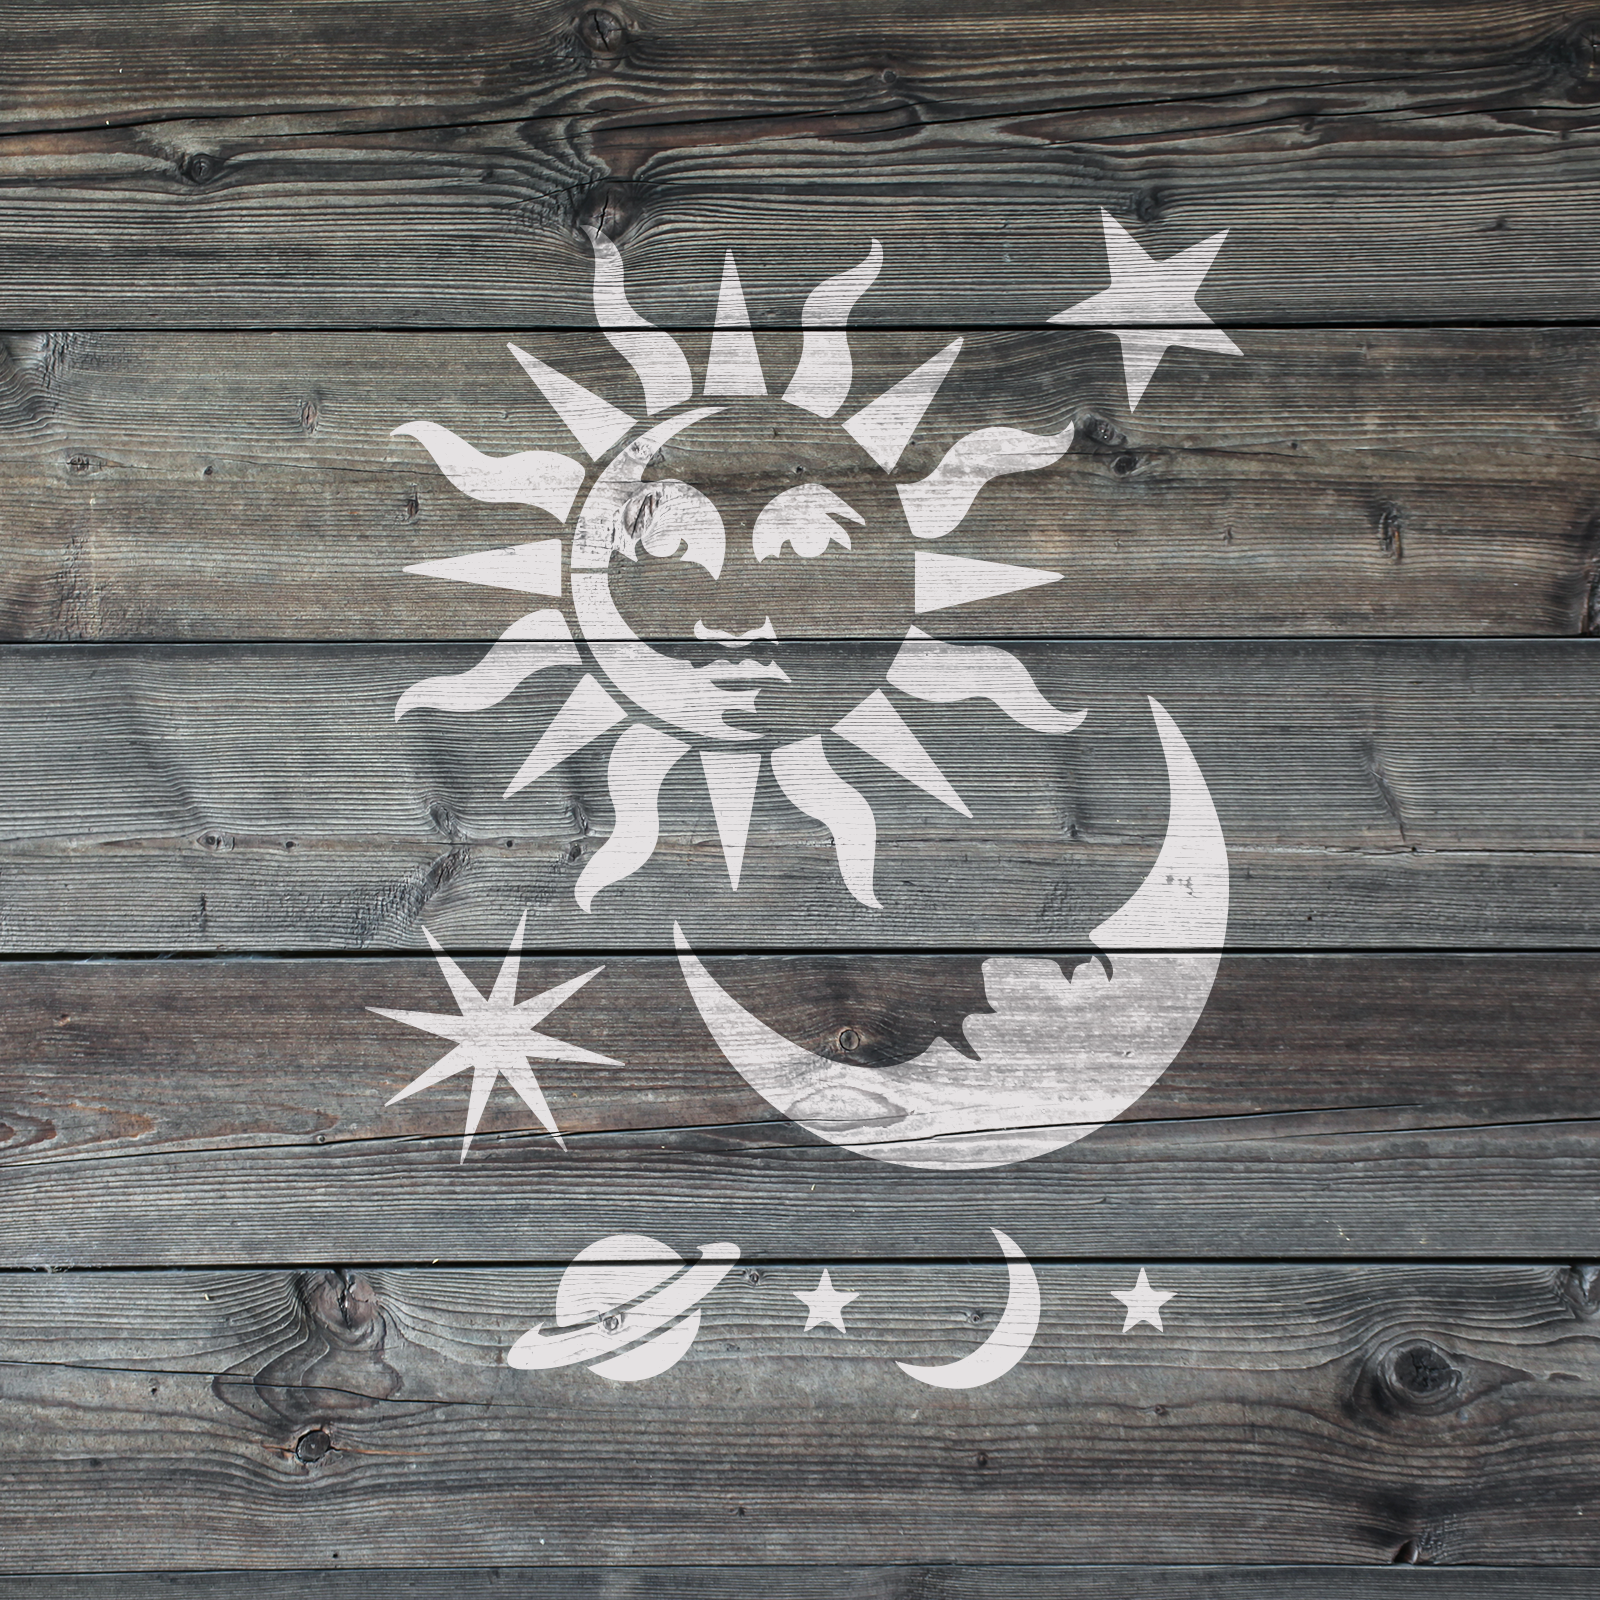 Celestial Sun and Moon Stencil - Reusable Celestial Stencils for DIY Crafts